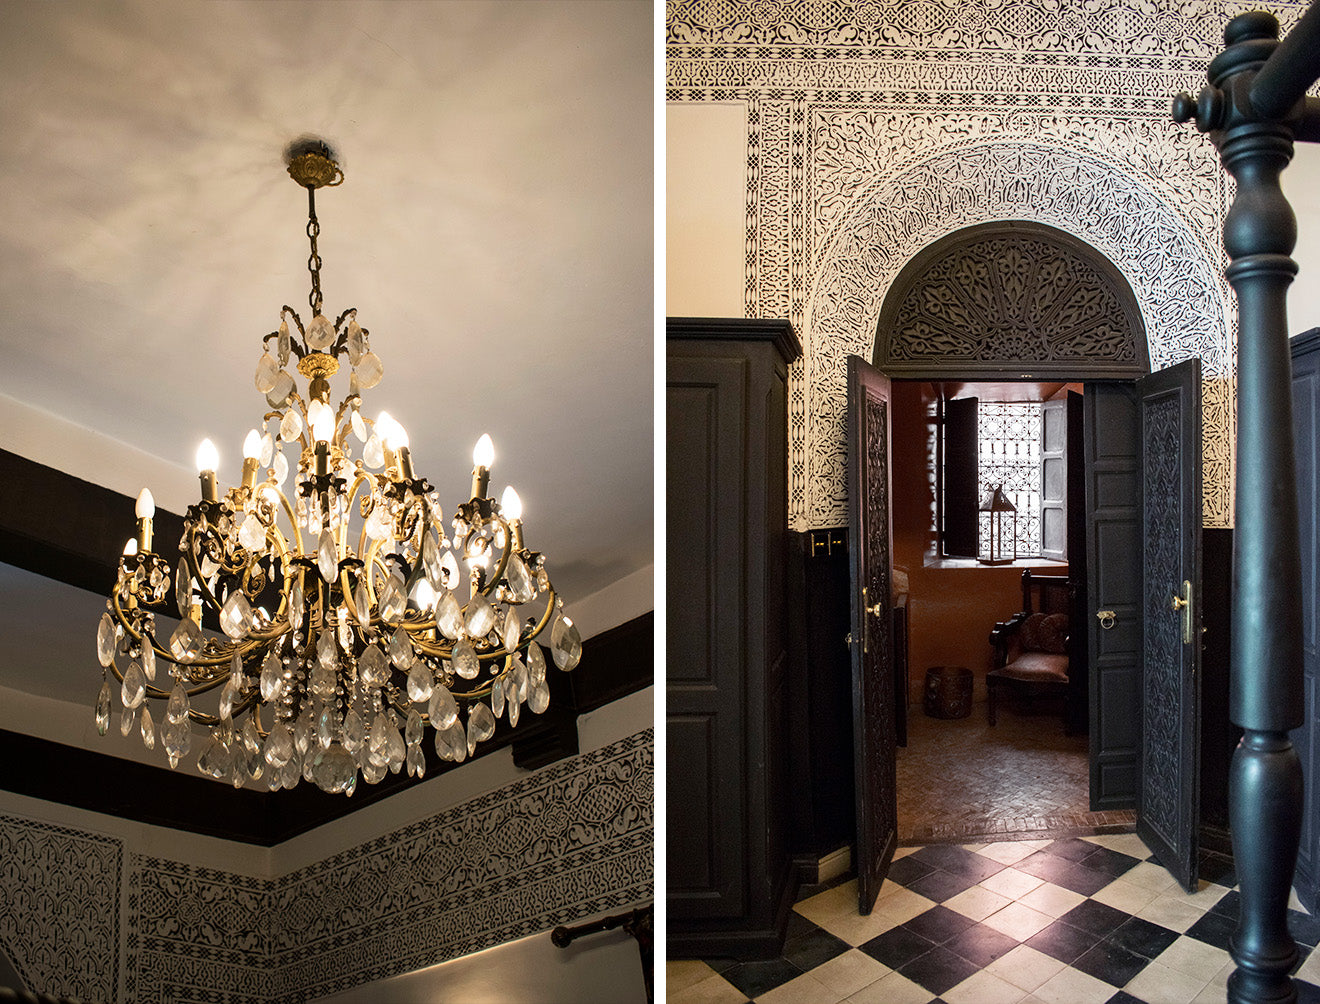 Chandelier and Moroccan detail on display in the State of Grace Suite